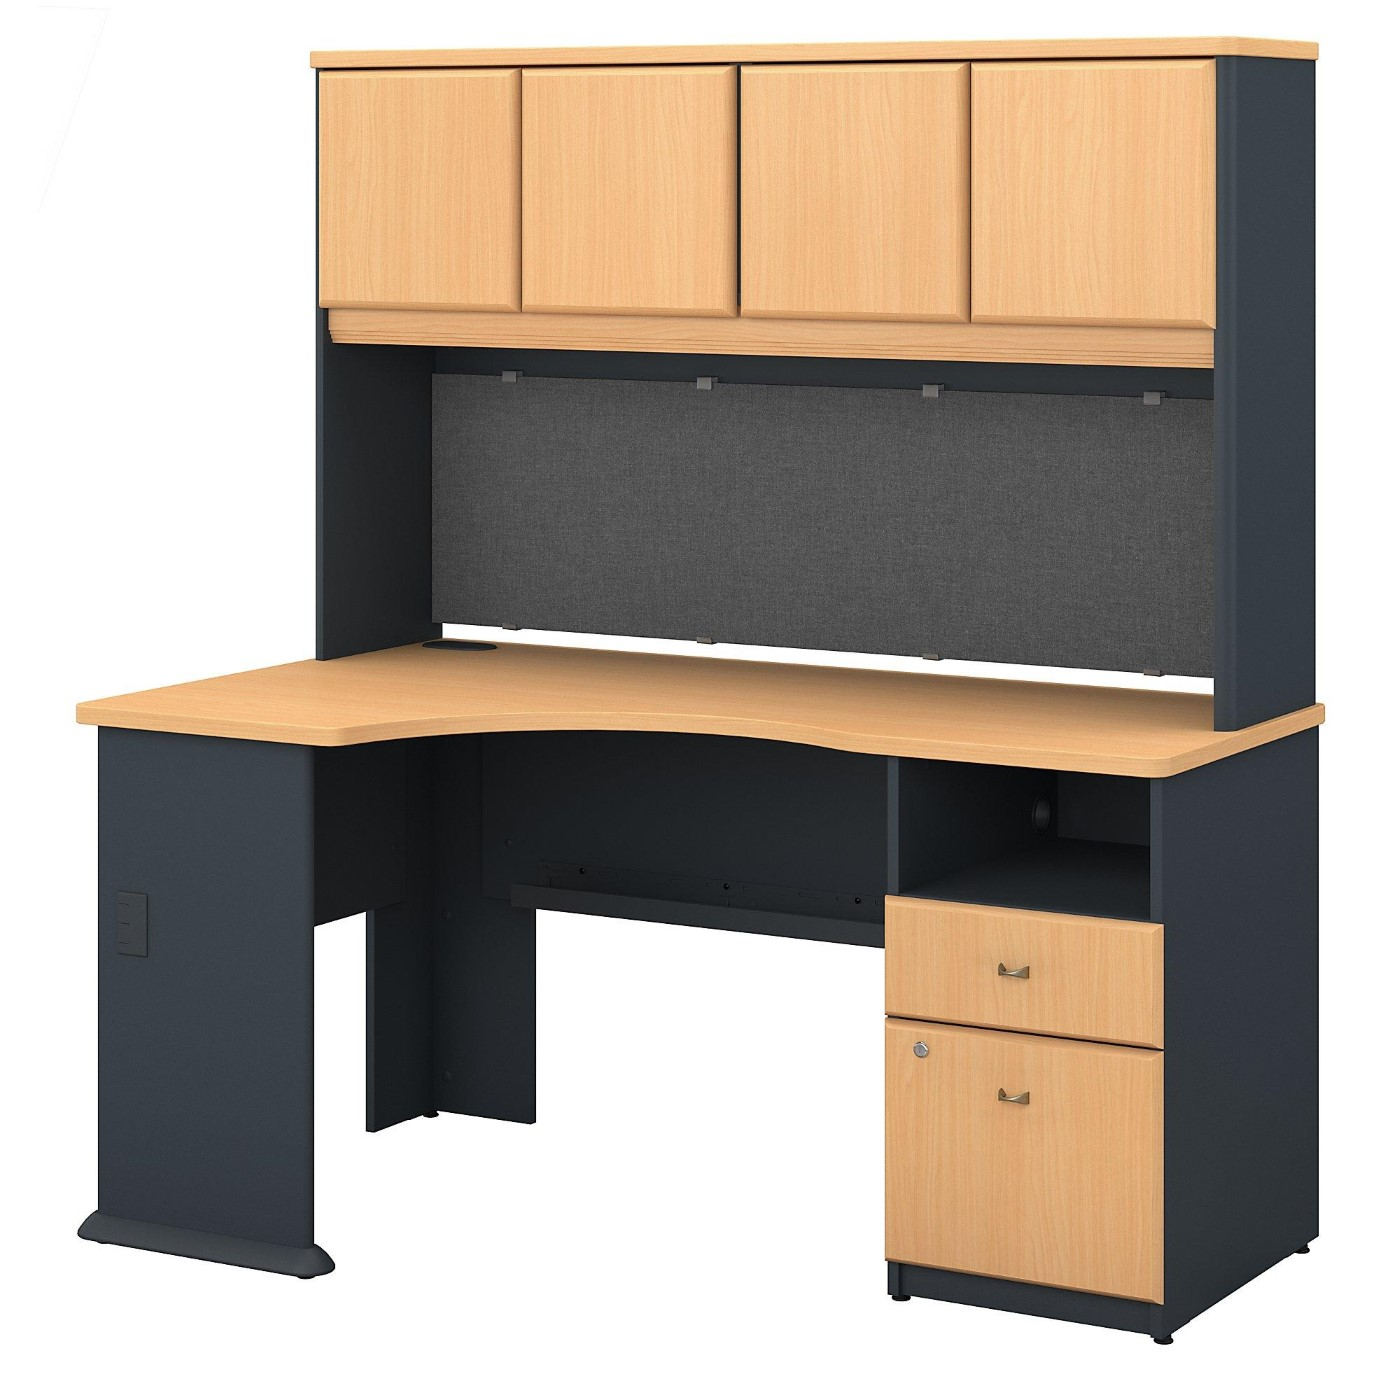 BUSH BUSINESS FURNITURE SERIES A 60W CORNER DESK WITH HUTCH AND 2 DRAWER PEDESTAL #EH-SRA007BE. FREE SHIPPING</font></b></font></b>&#x1F384<font color=red><b>ERGONOMICHOME HOLIDAY SALE - ENDS DEC. 17, 2019</b></font>&#x1F384